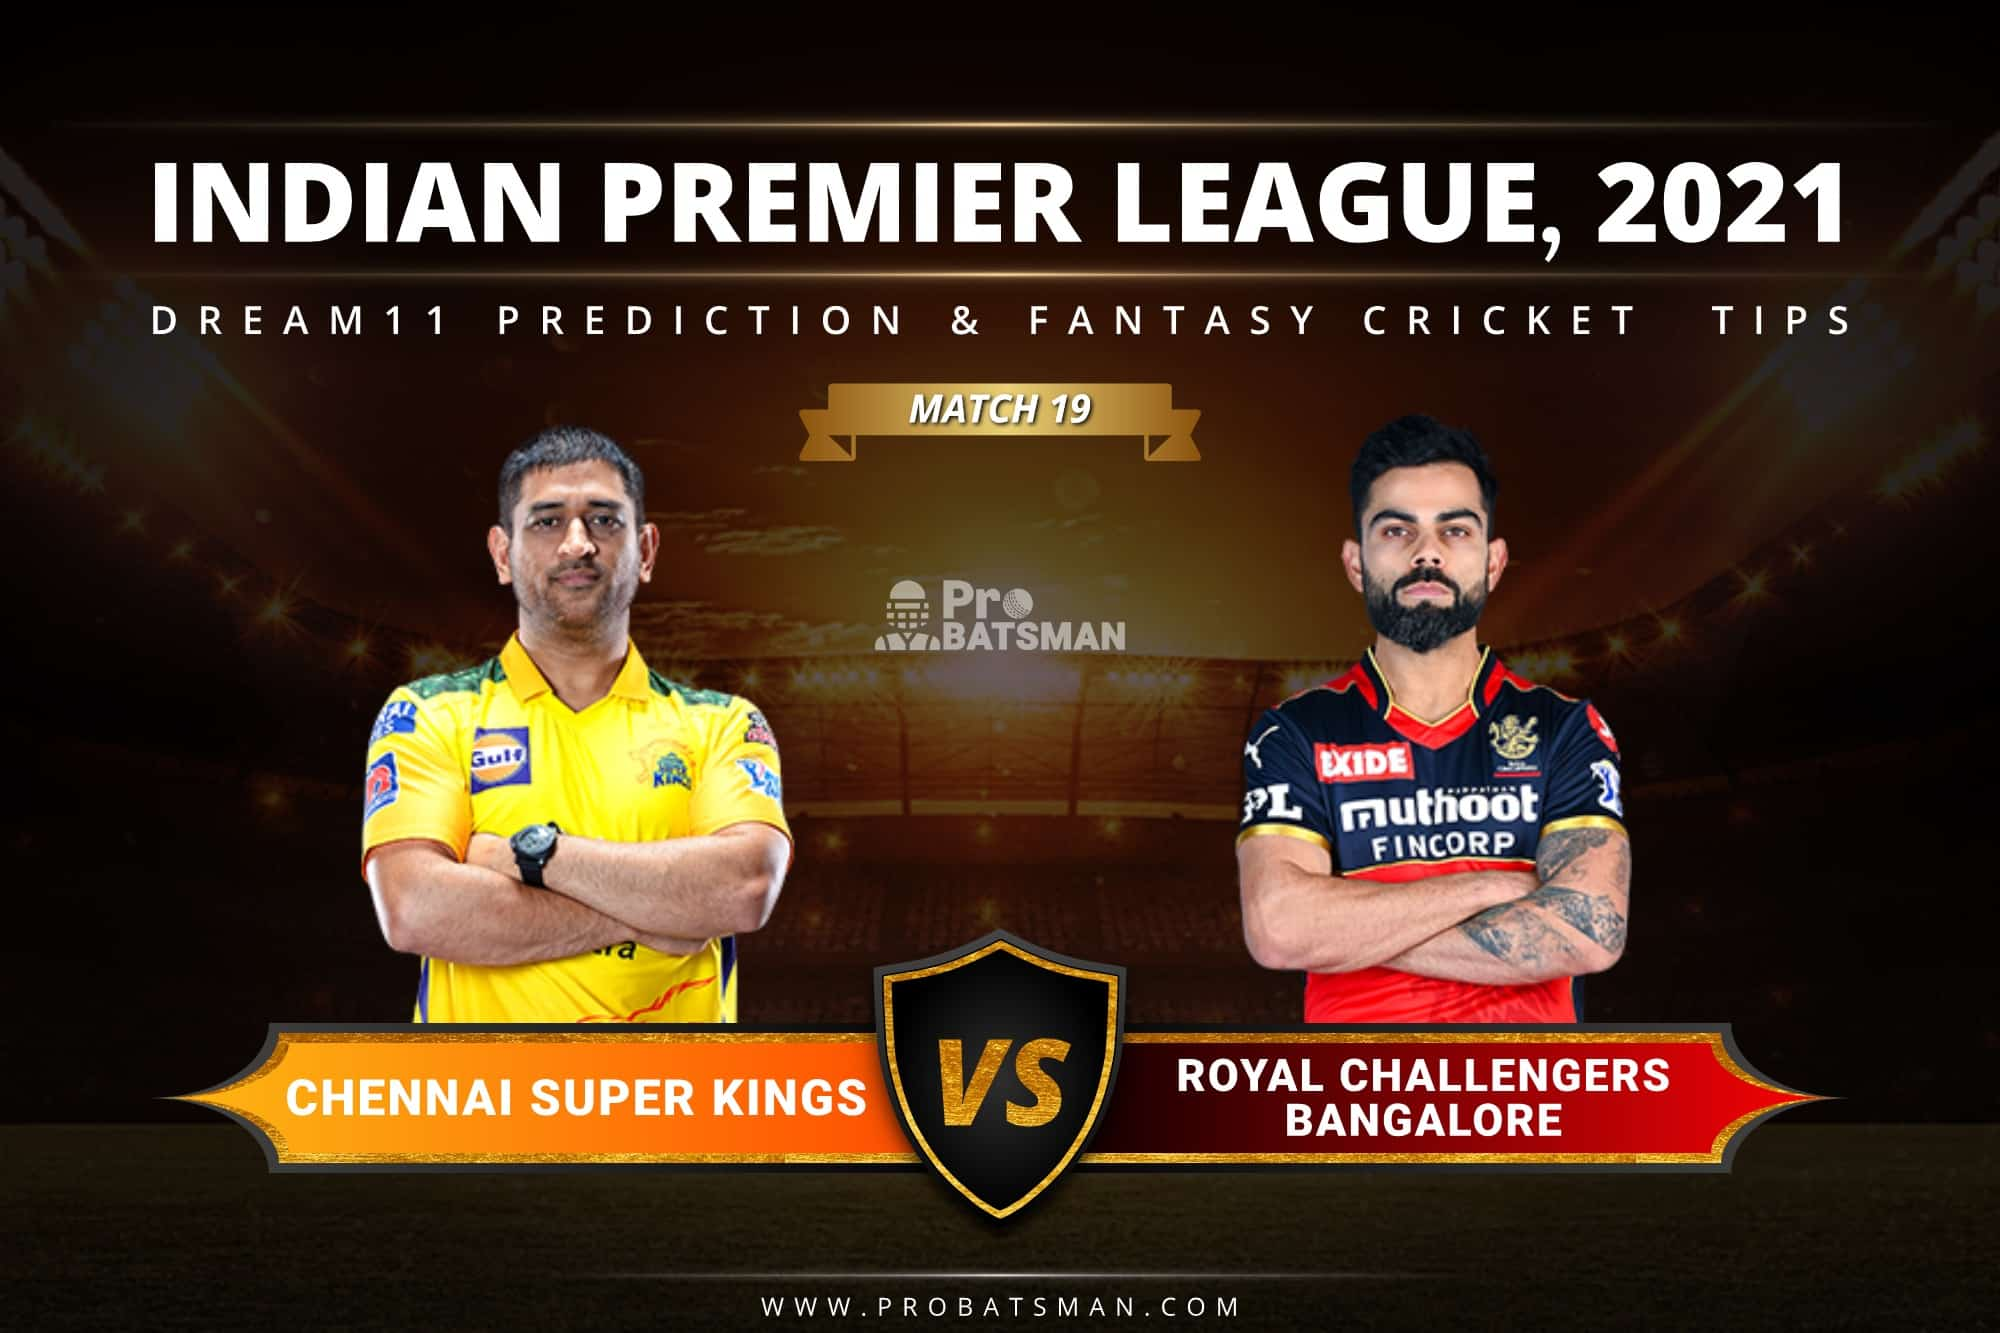 CSK vs RCB Dream11 Prediction: Fantasy Cricket Tips, Playing XI, Pitch Report, Stats & Injury Updates of Match 19, IPL 2021